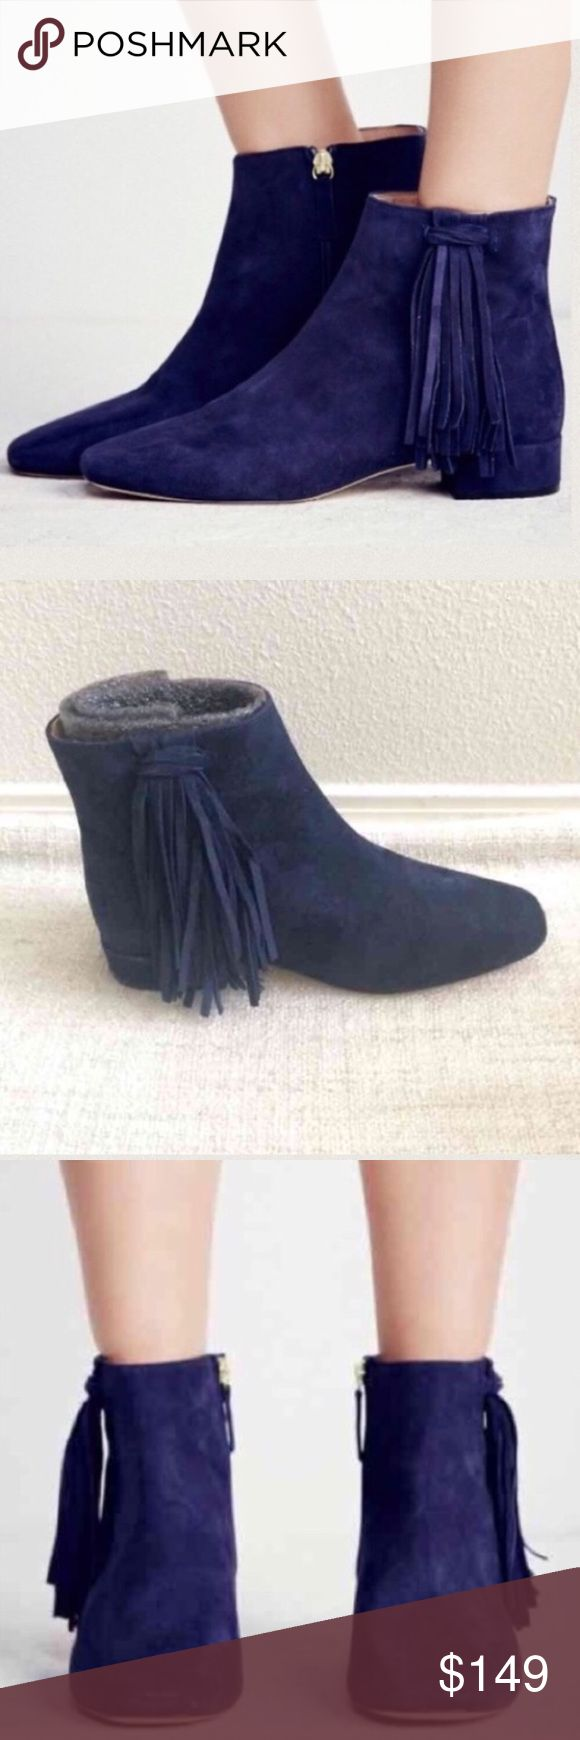 People women's new ankle  boots size 37 US 7 New with box, never worn. Hot Women's dark blue boots . Heels size 1 inches. Boots can be worn for church/ work or other things. Very comfortable shoes. Thank you for looking and please feel free to view my other items :) Free People Shoes Ankle Boots & Booties